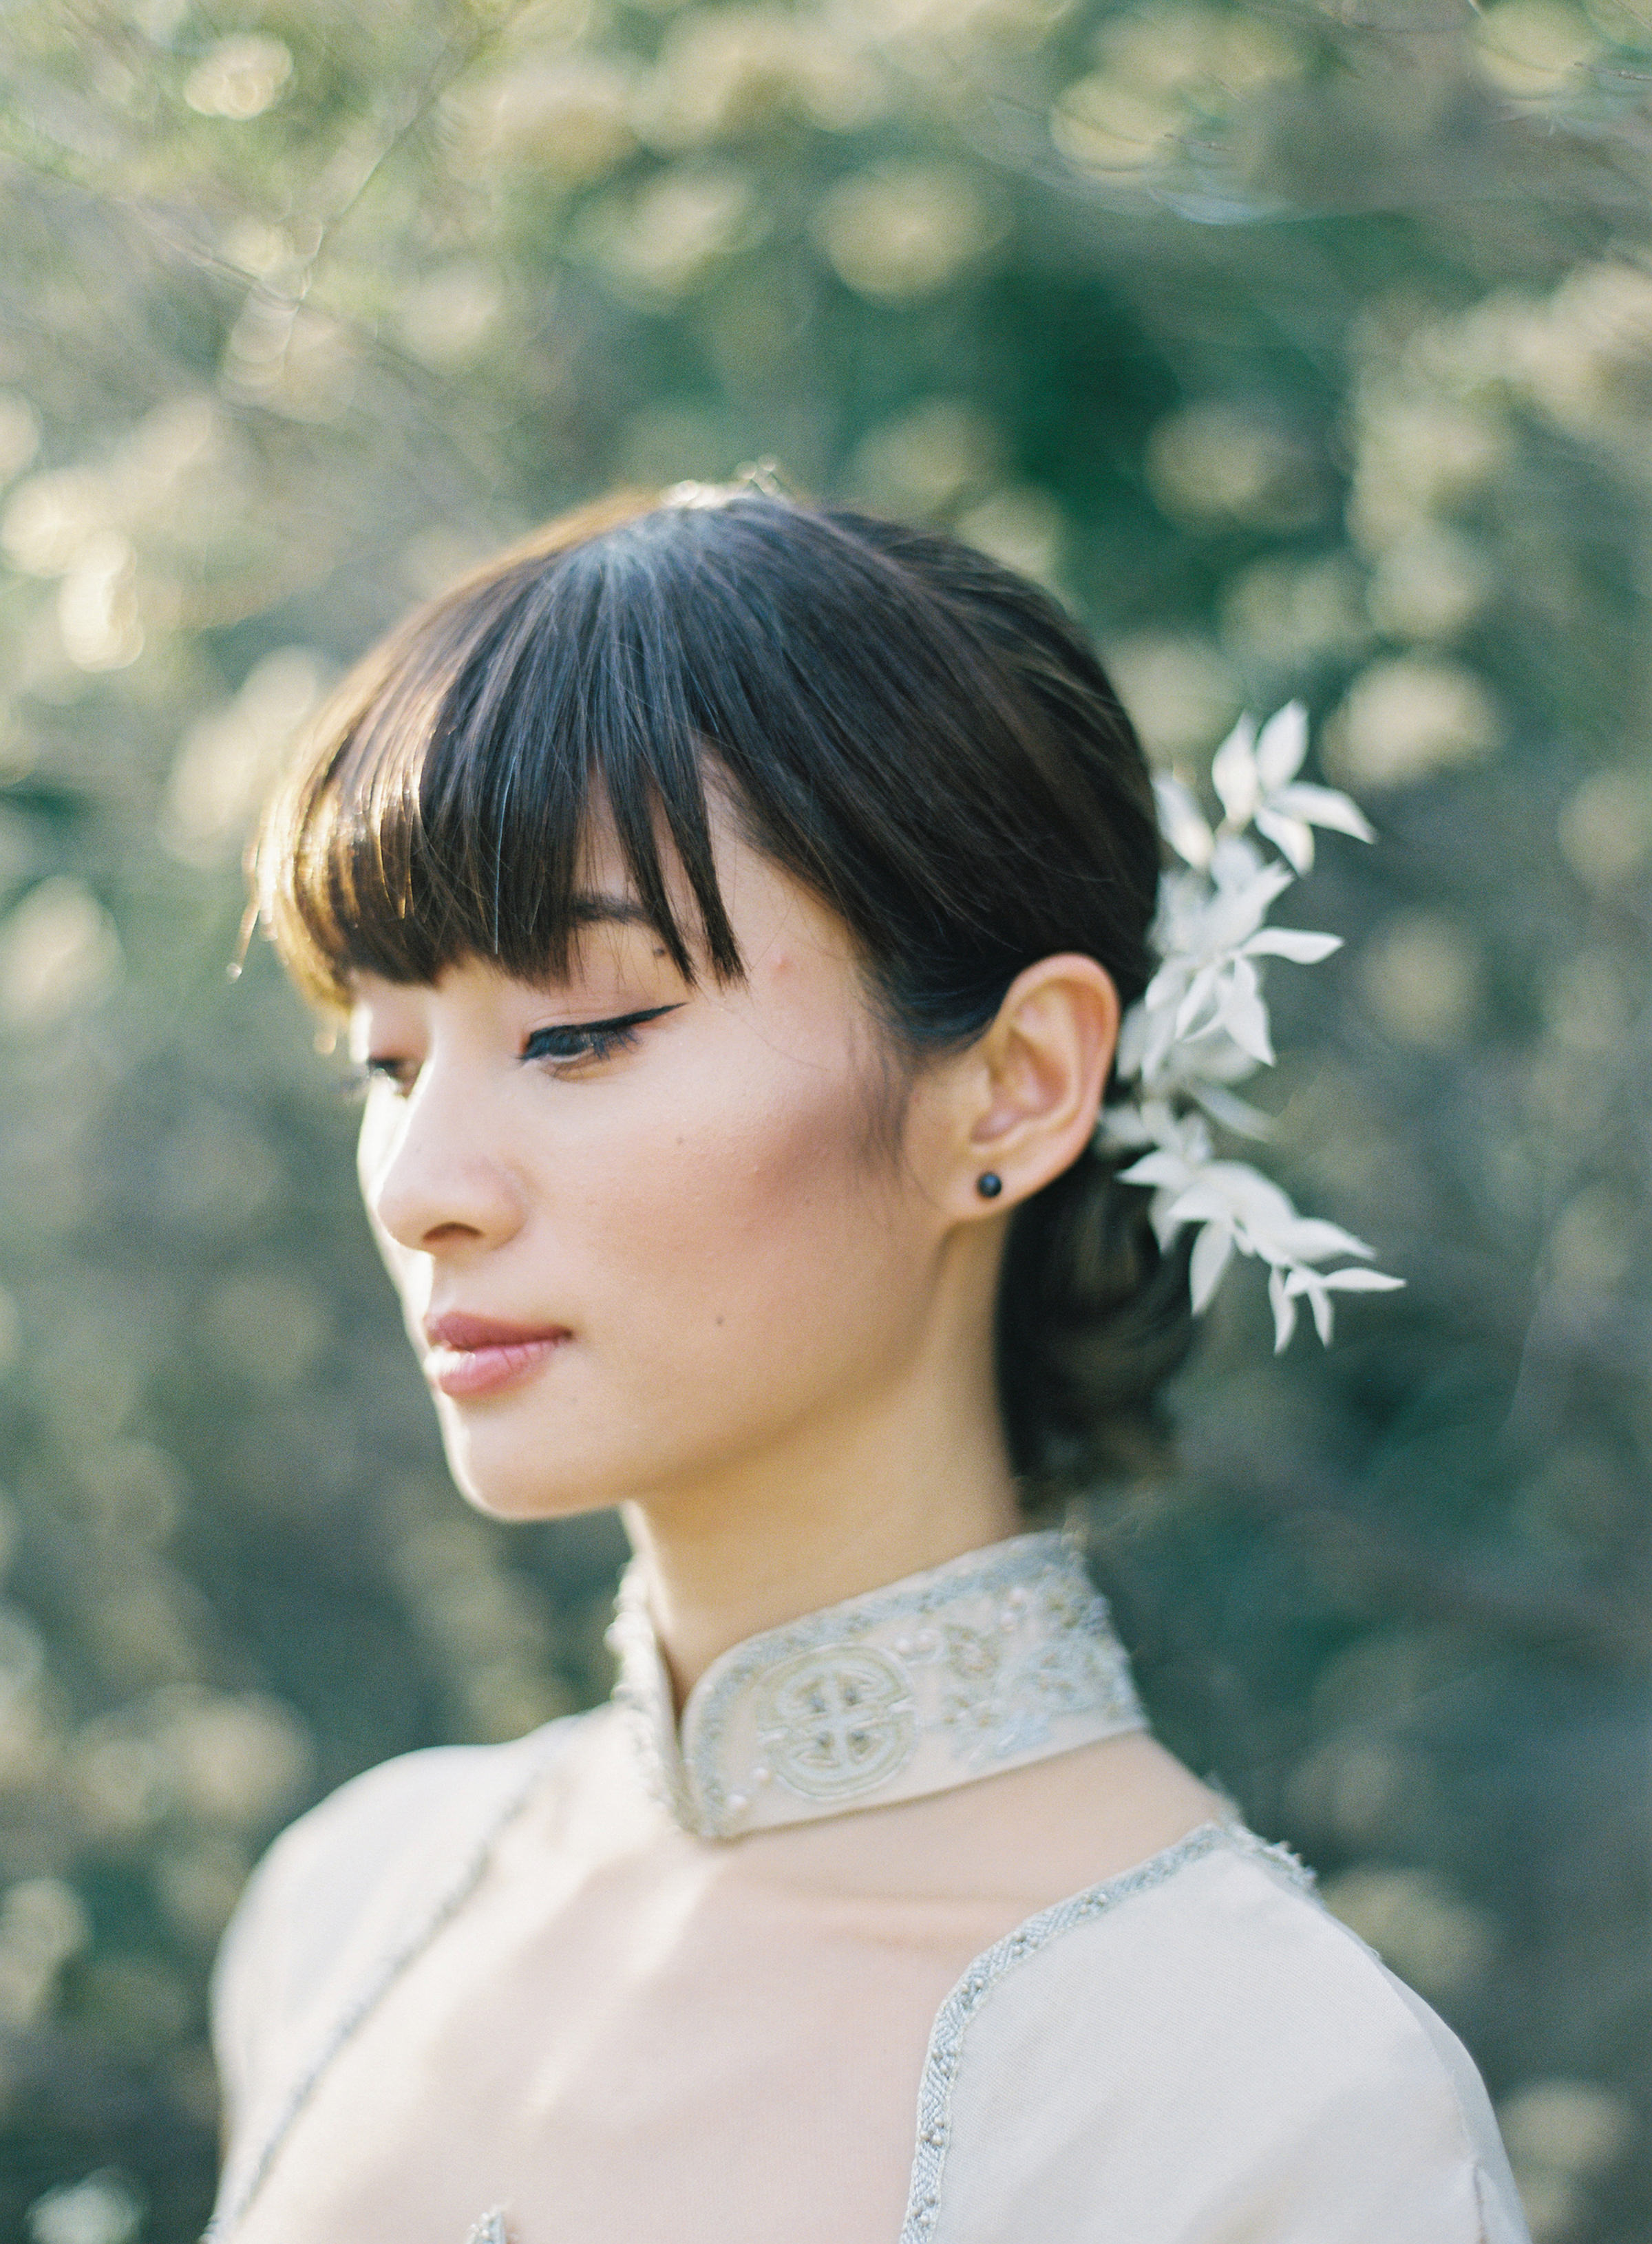 Three quarter profile bride with floral hair accessory - photo by Jen Huang